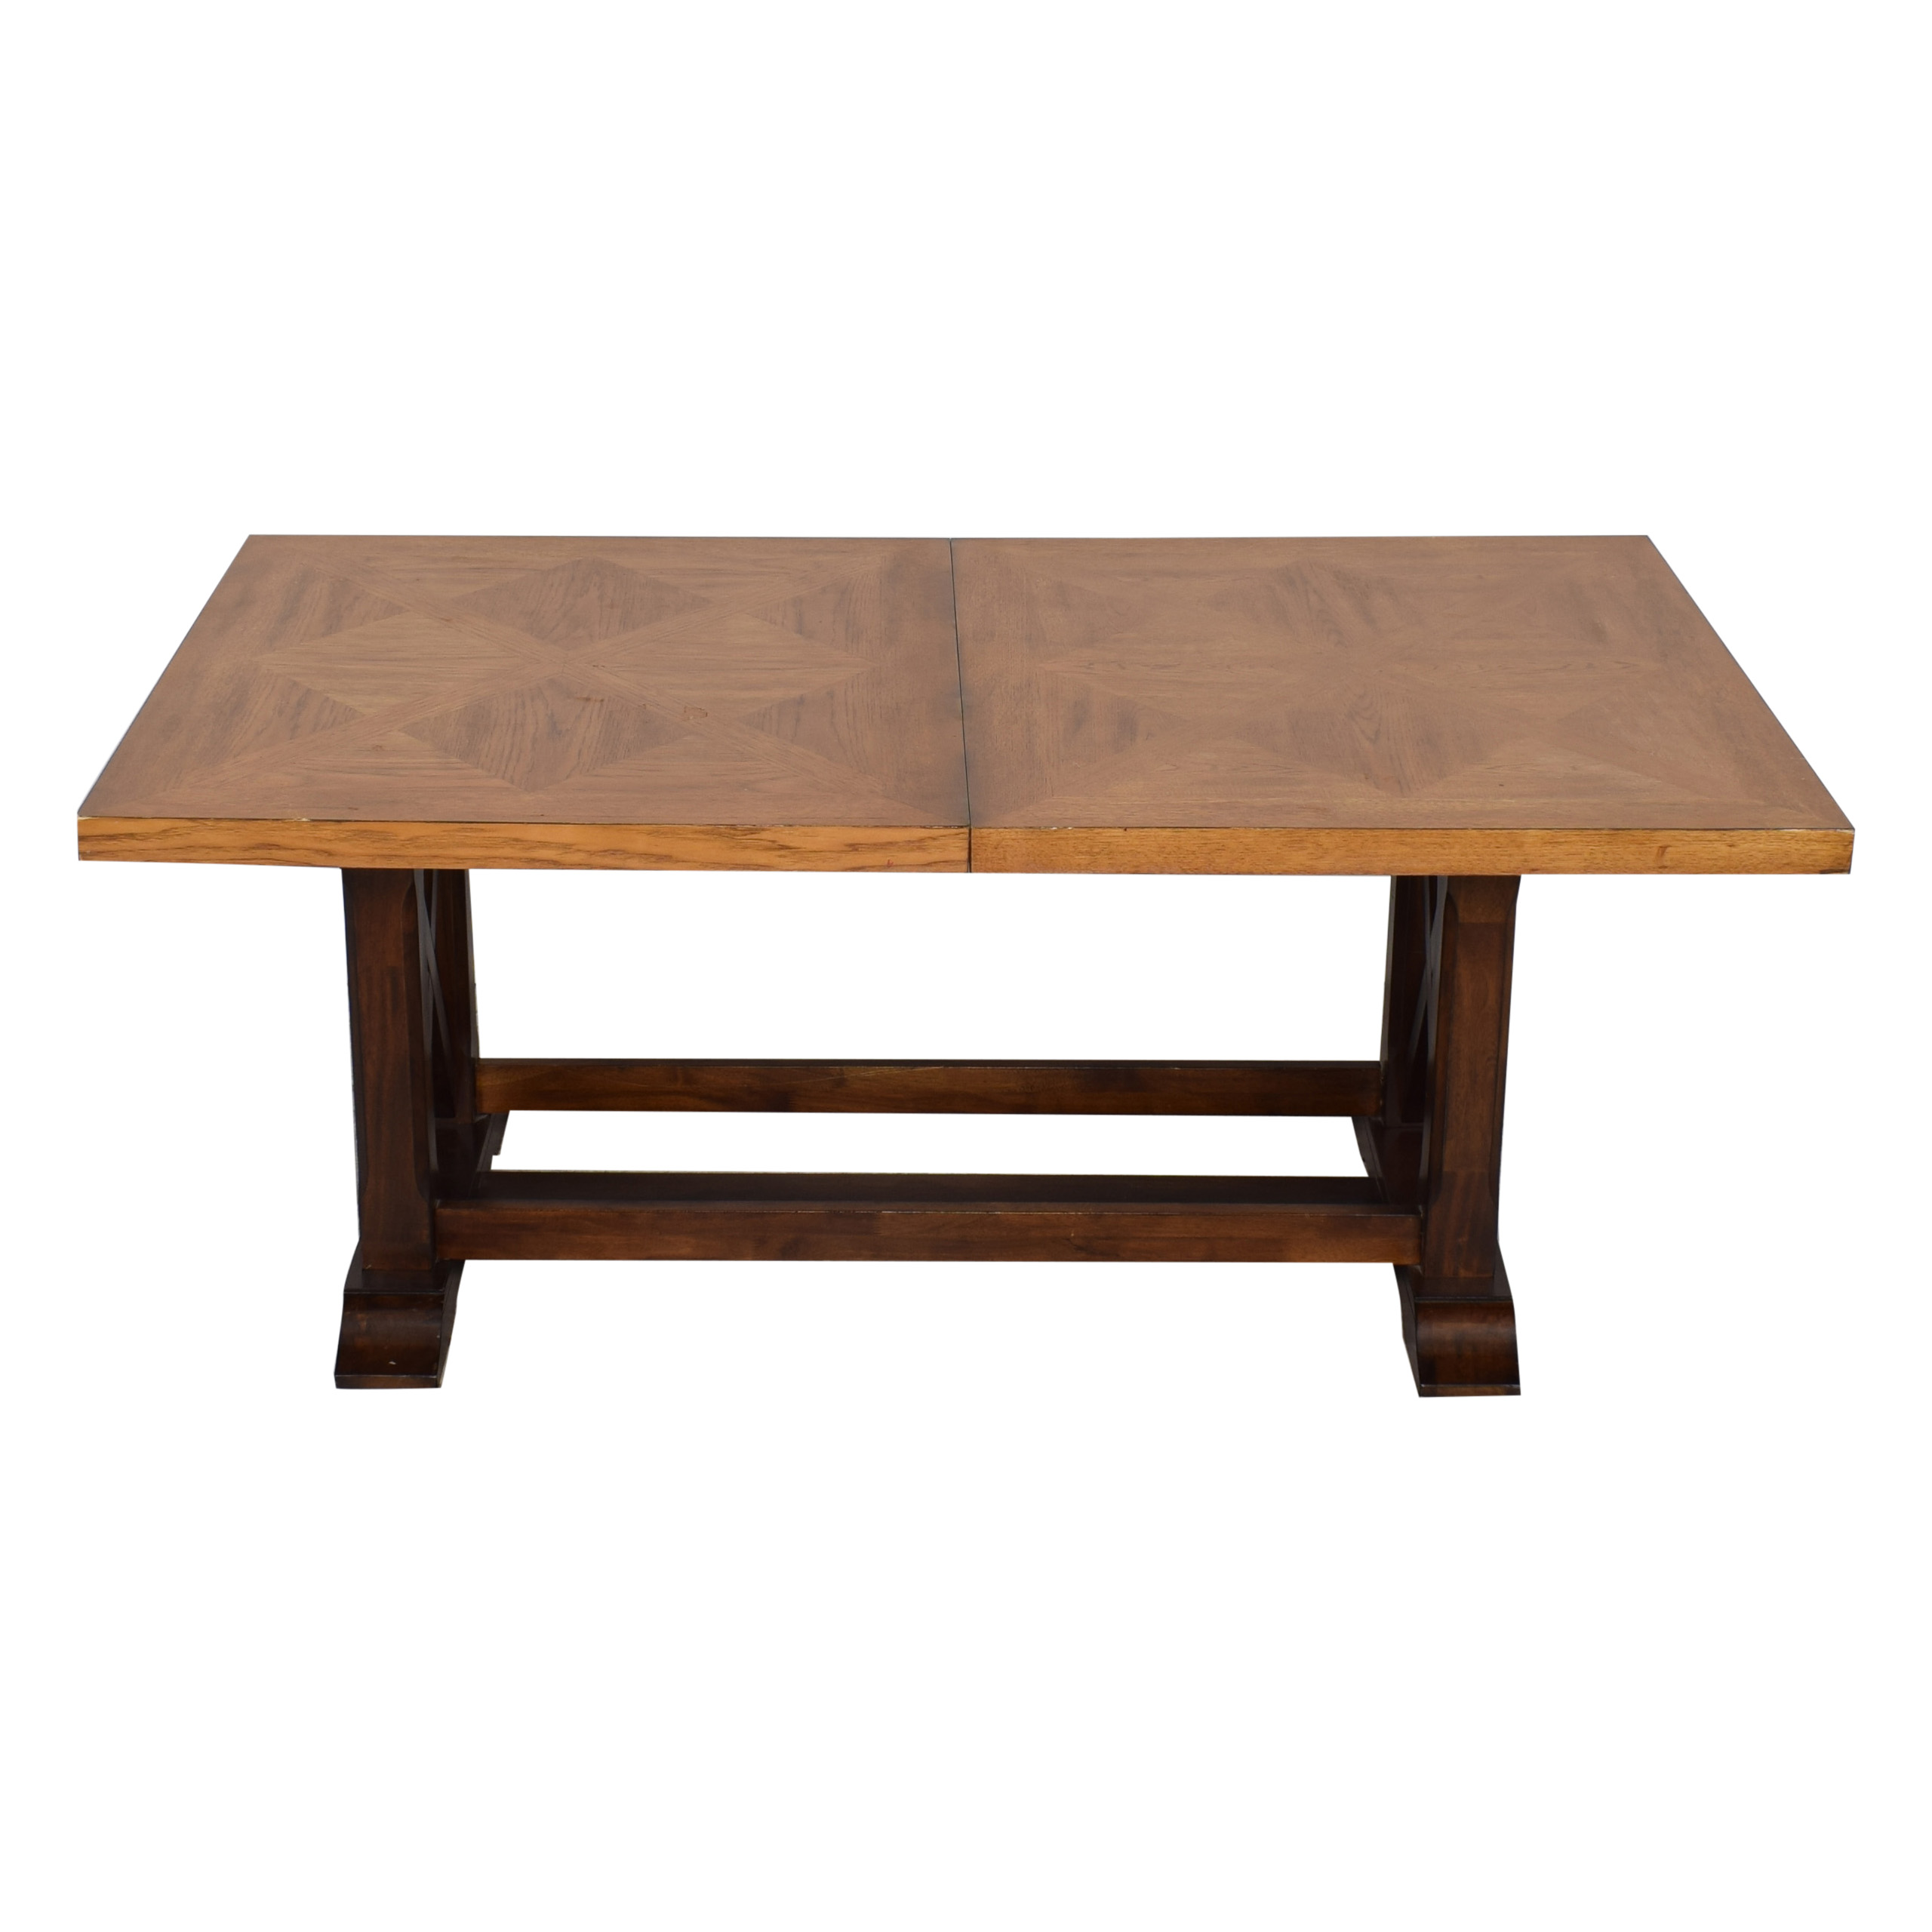 Klaussner Klaussner Dayton Extended Dining Table brown